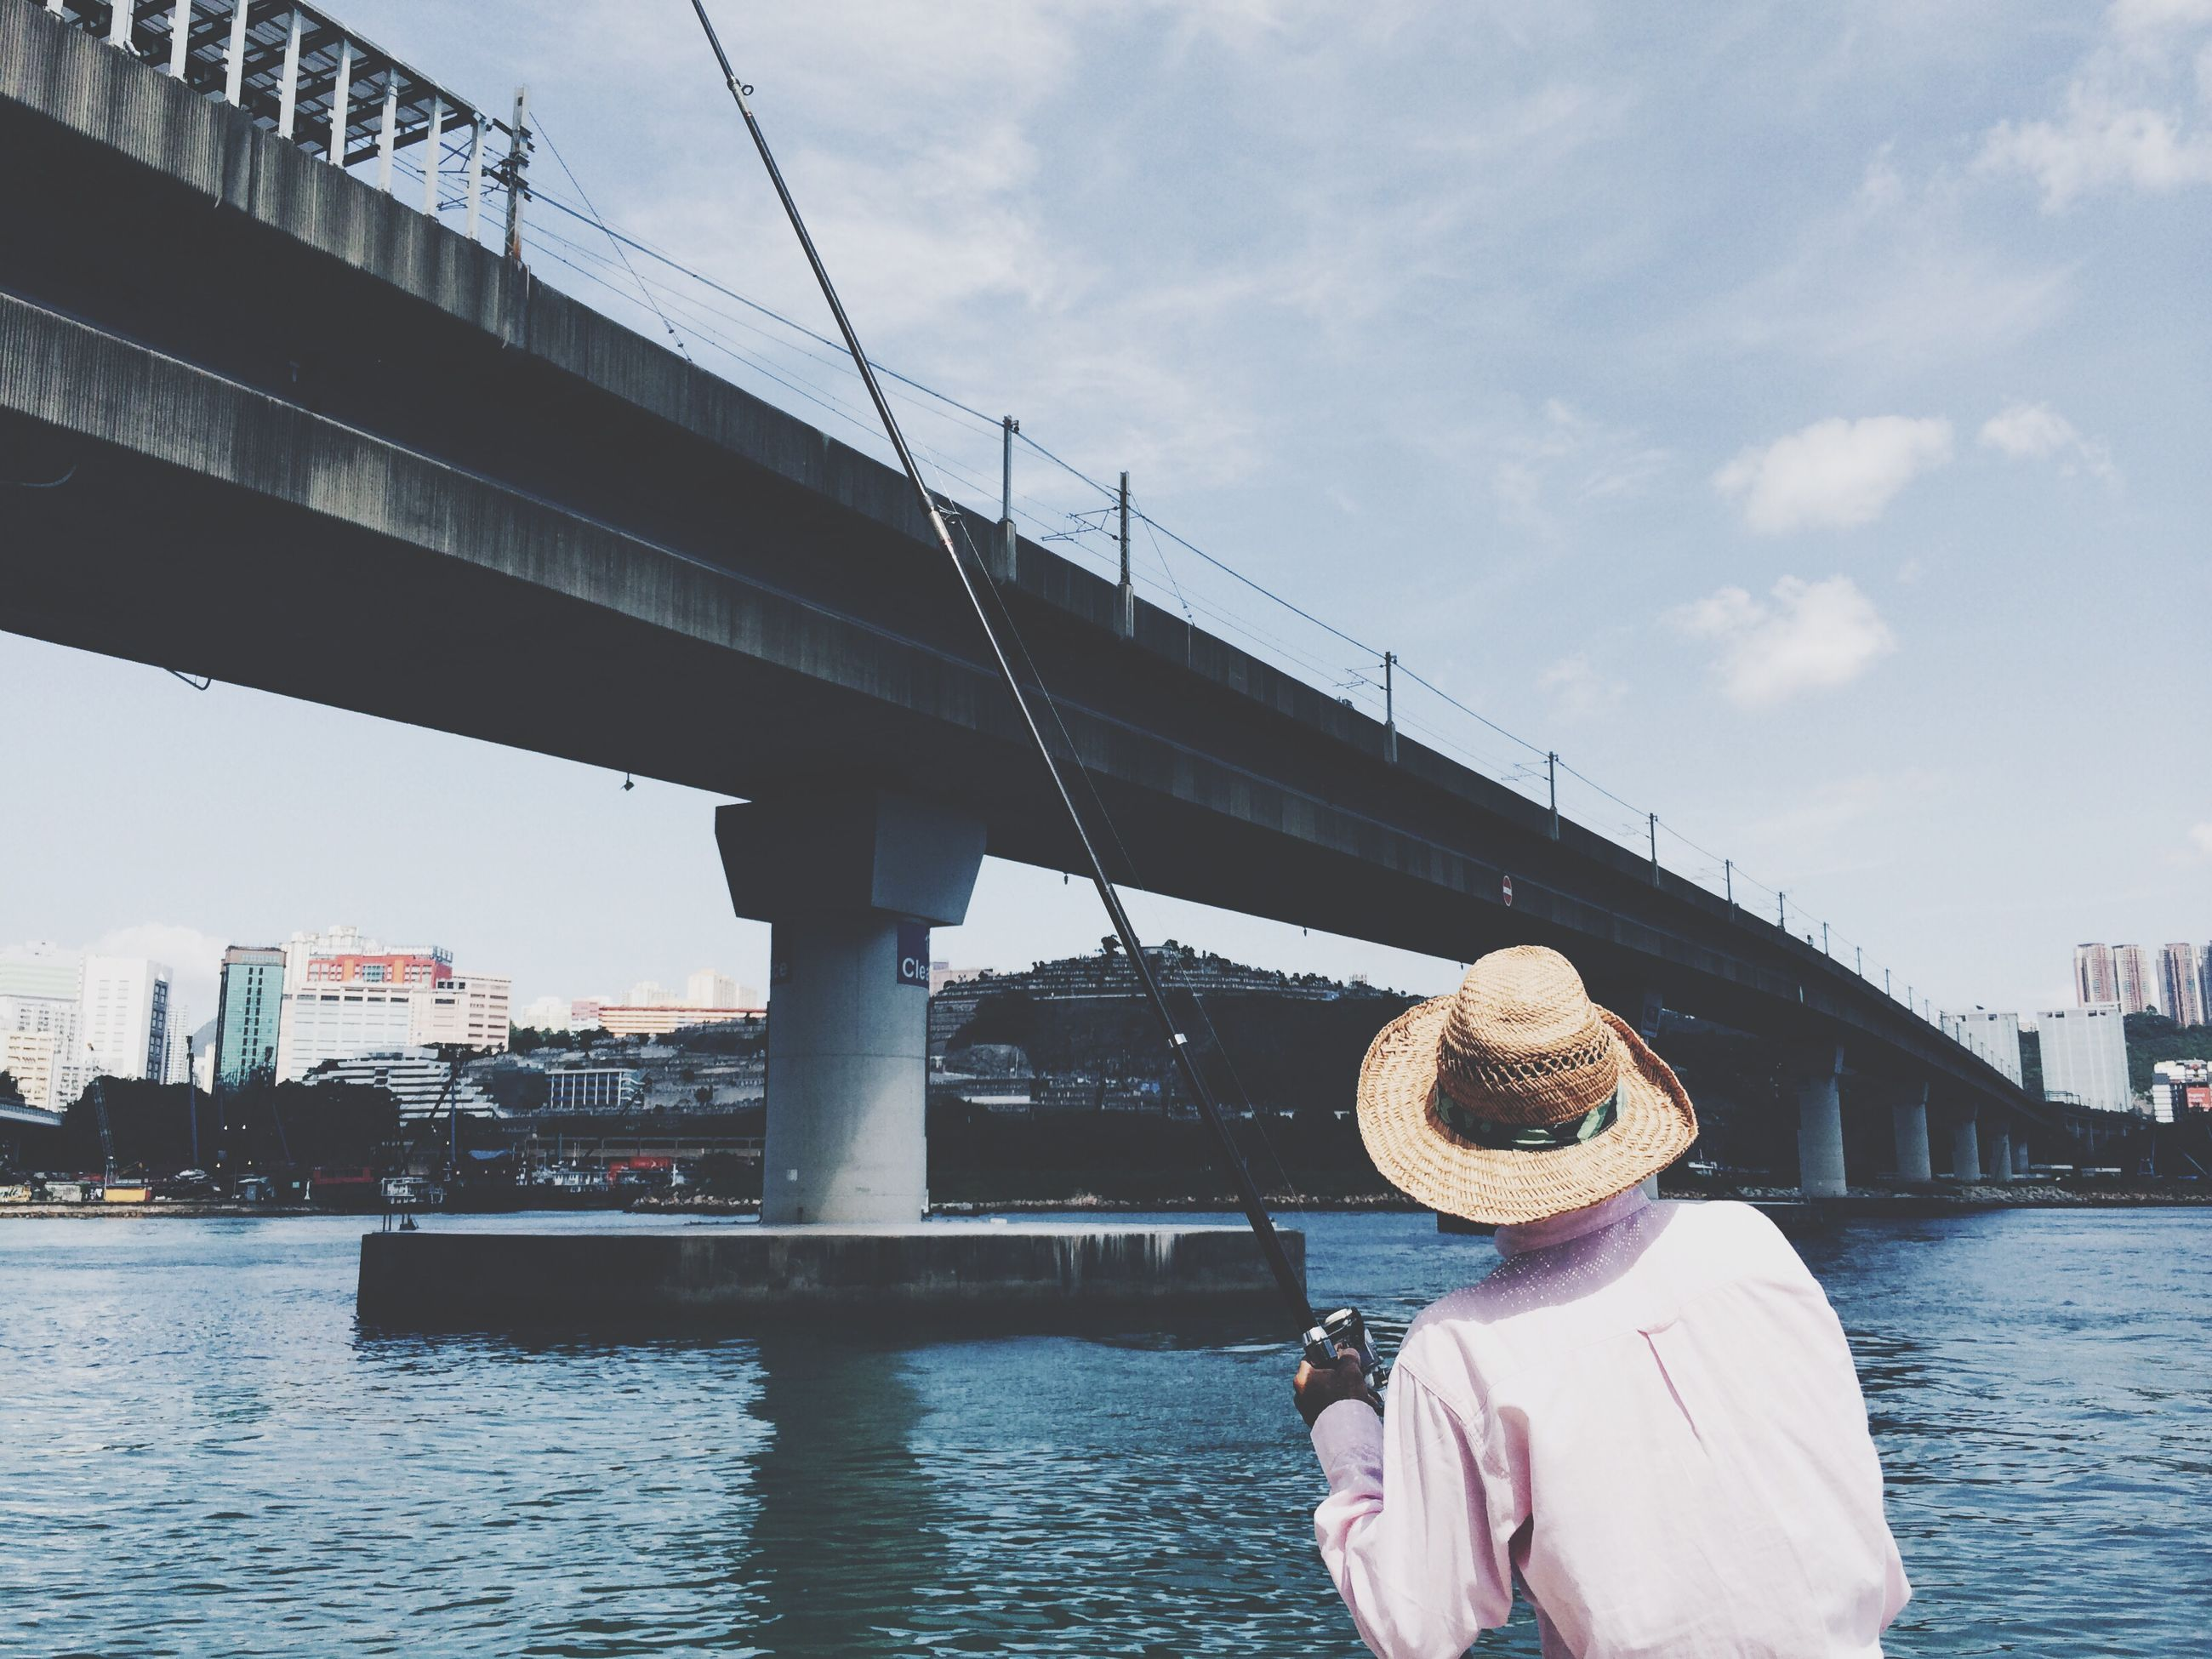 water, built structure, architecture, sky, river, transportation, bridge - man made structure, nautical vessel, connection, building exterior, waterfront, city, mode of transport, men, boat, railing, day, cloud - sky